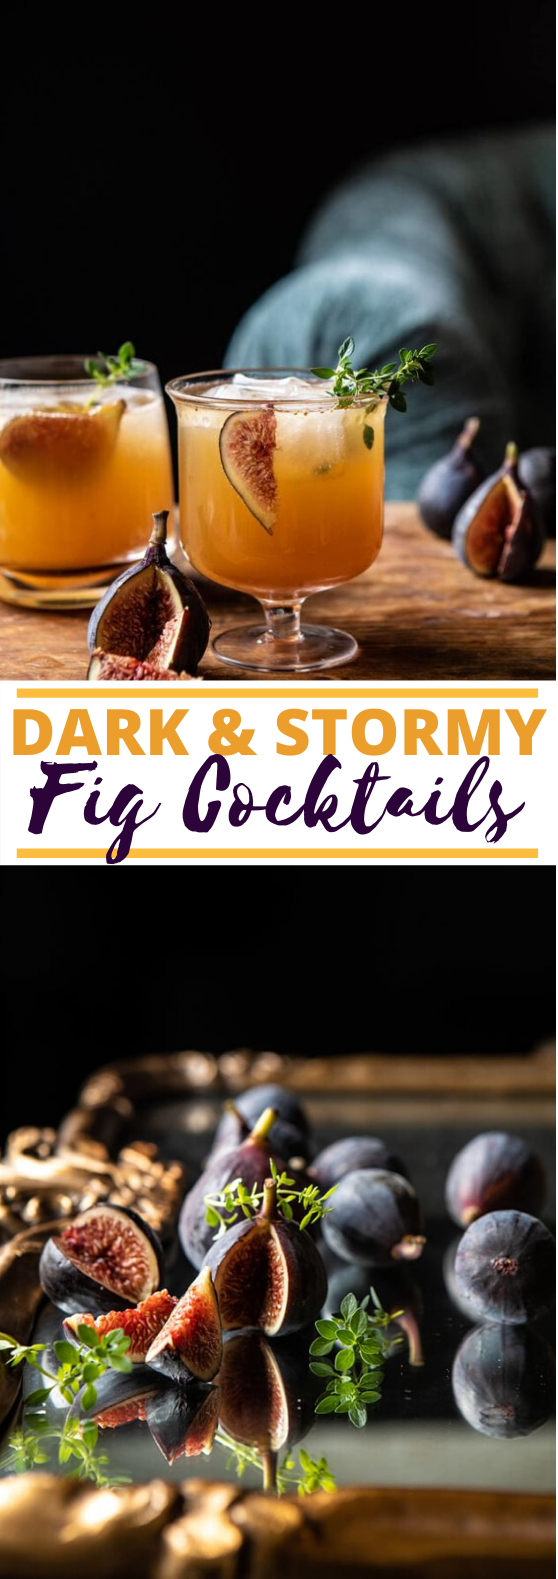 Fig Dark and Stormy #drinks #alcohol #fall #cocktails #rum